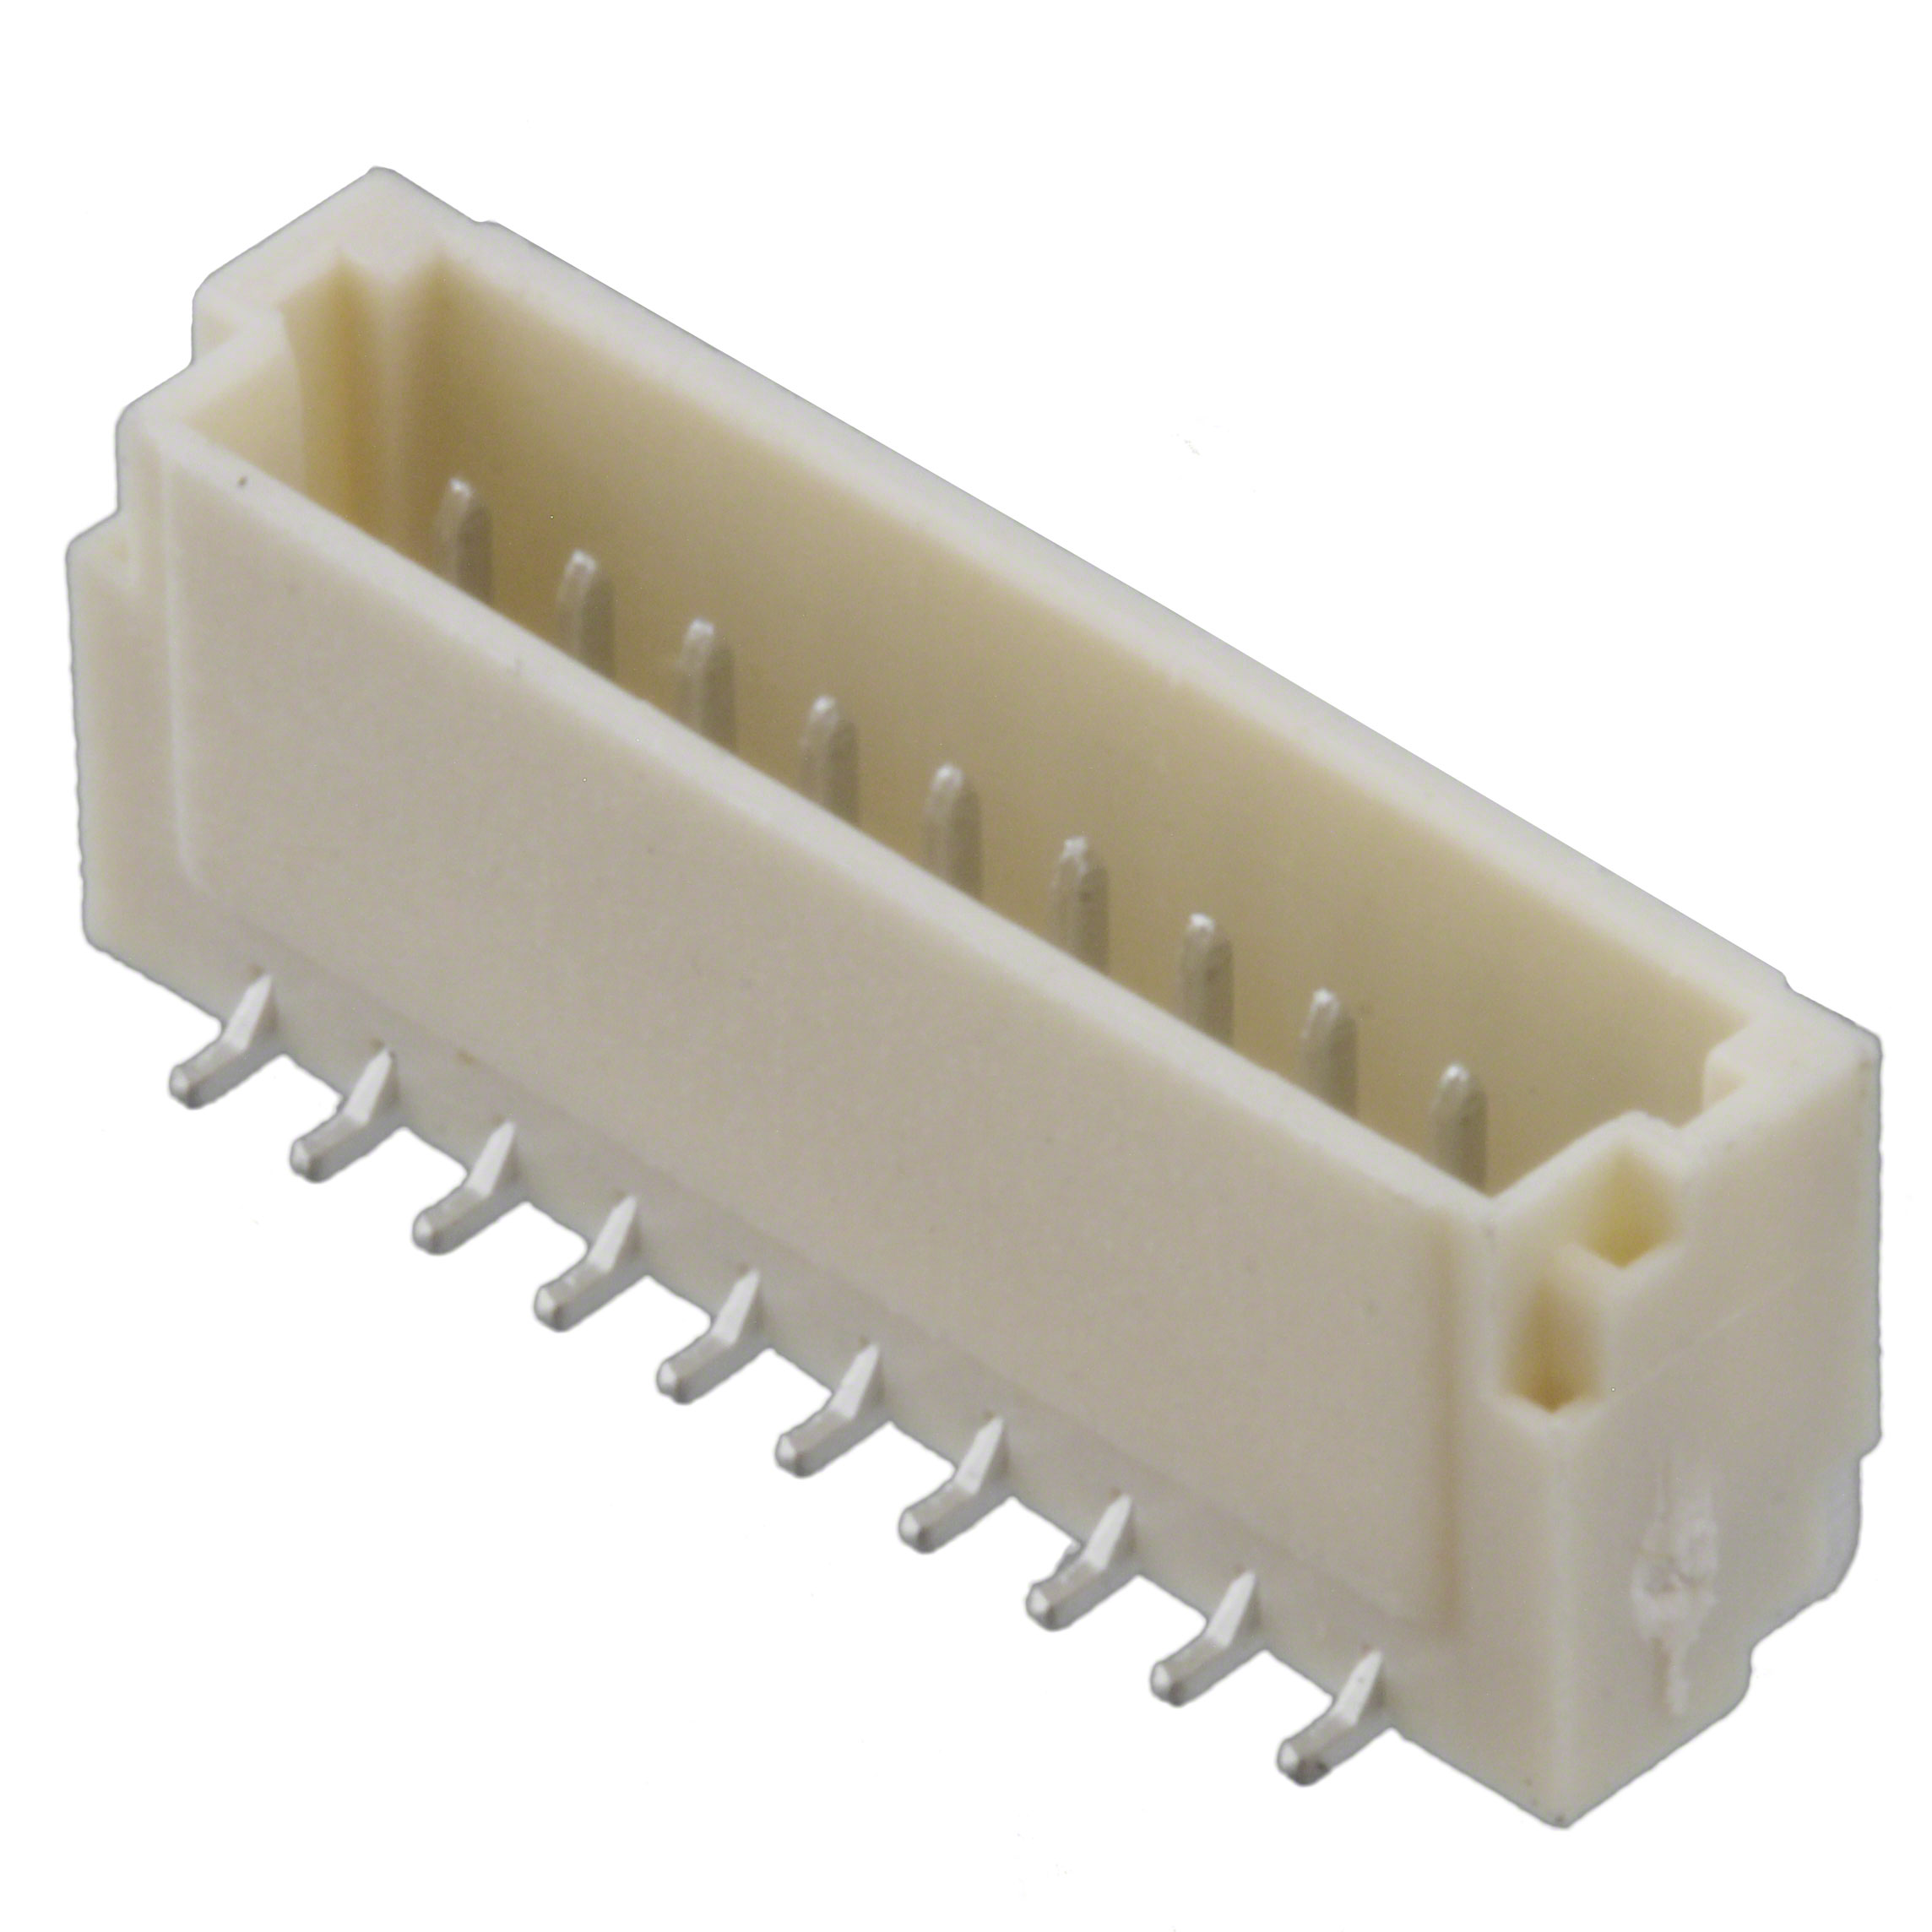 Image of 665310124022 by Wurth Electronics Inc.